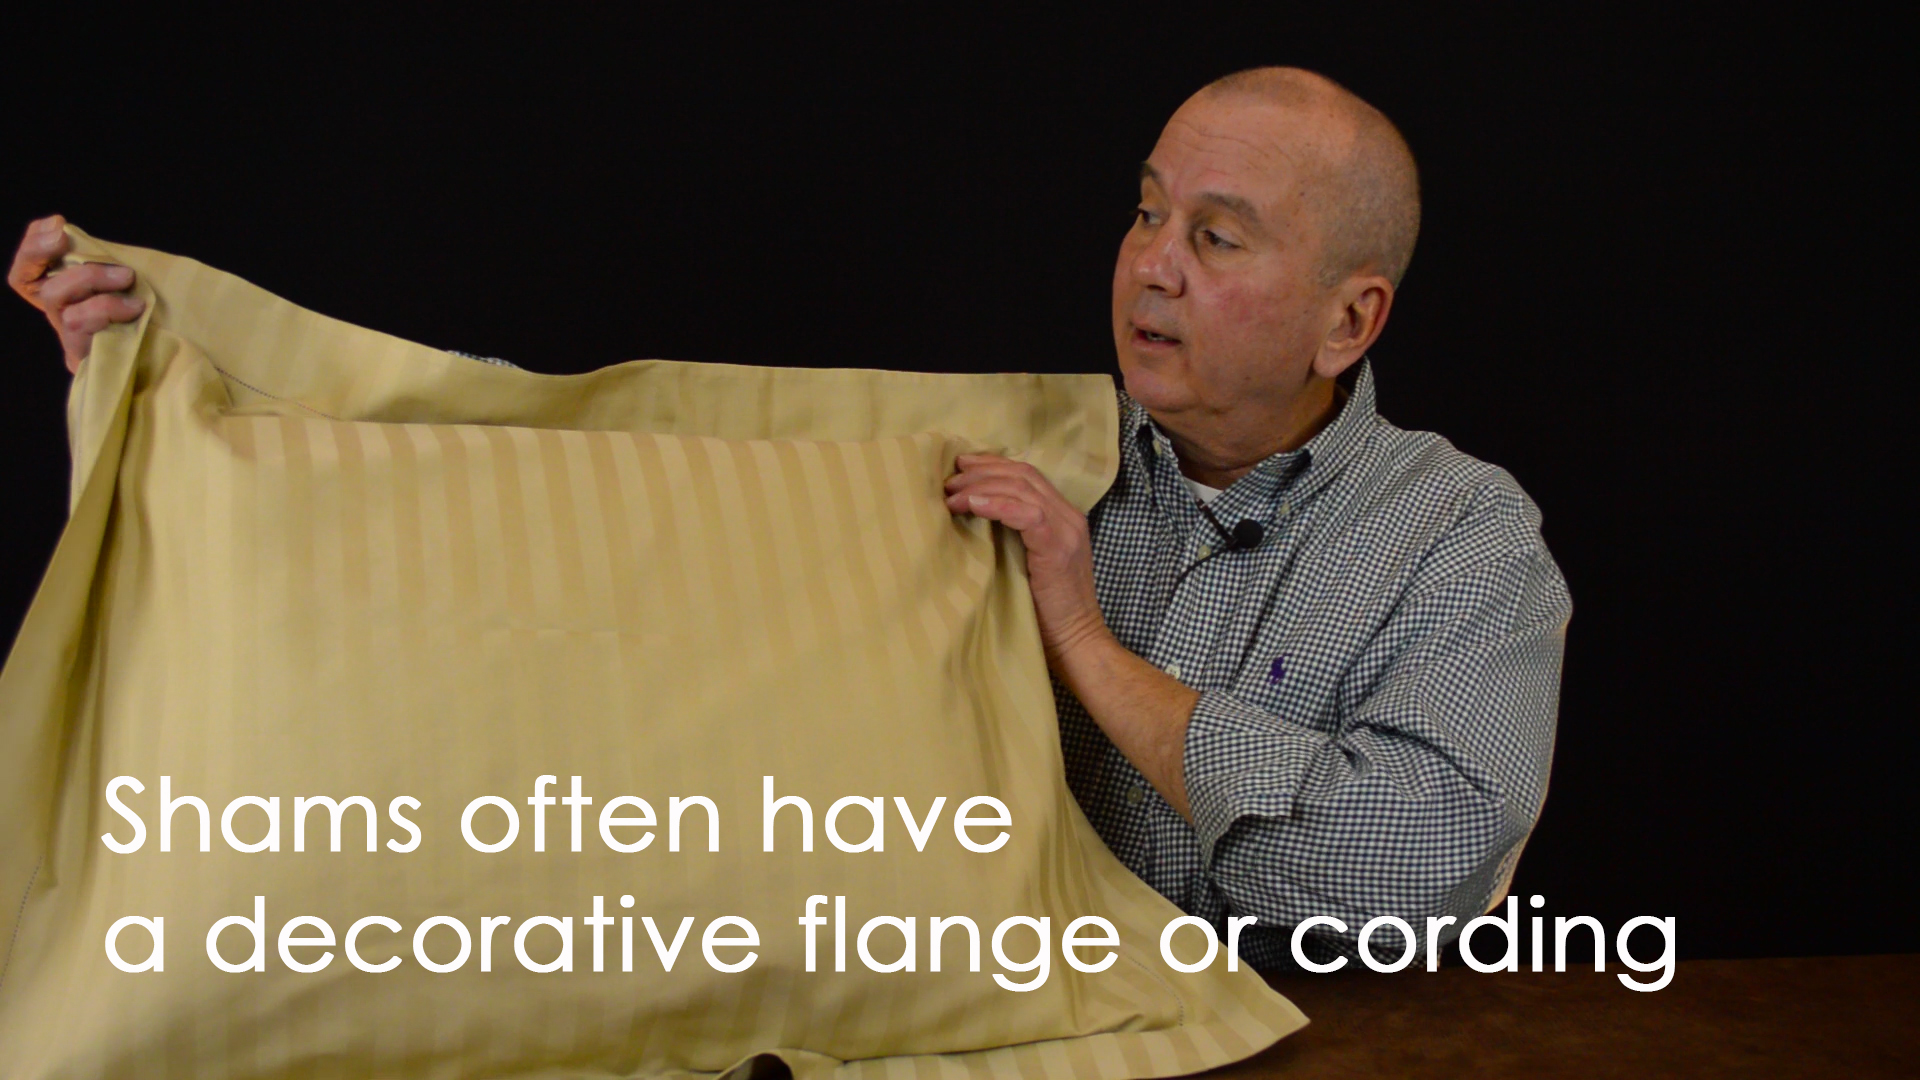 Pillow shams often have a flange or cording on all of their edges